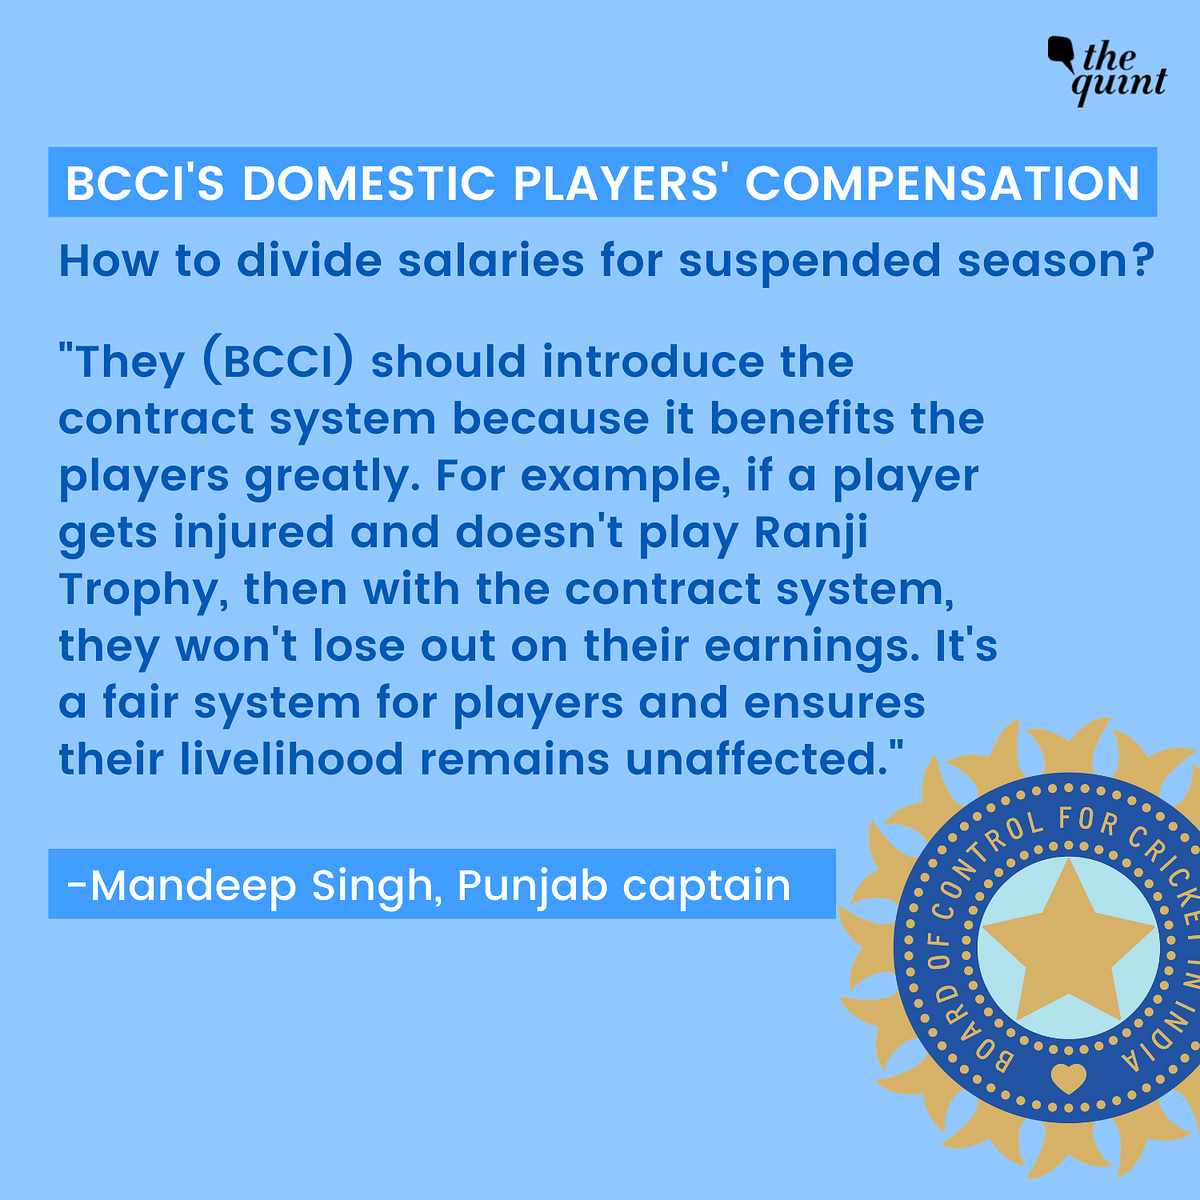 BCCI's Domestic Compensation: Players Suggest How to Divide Funds